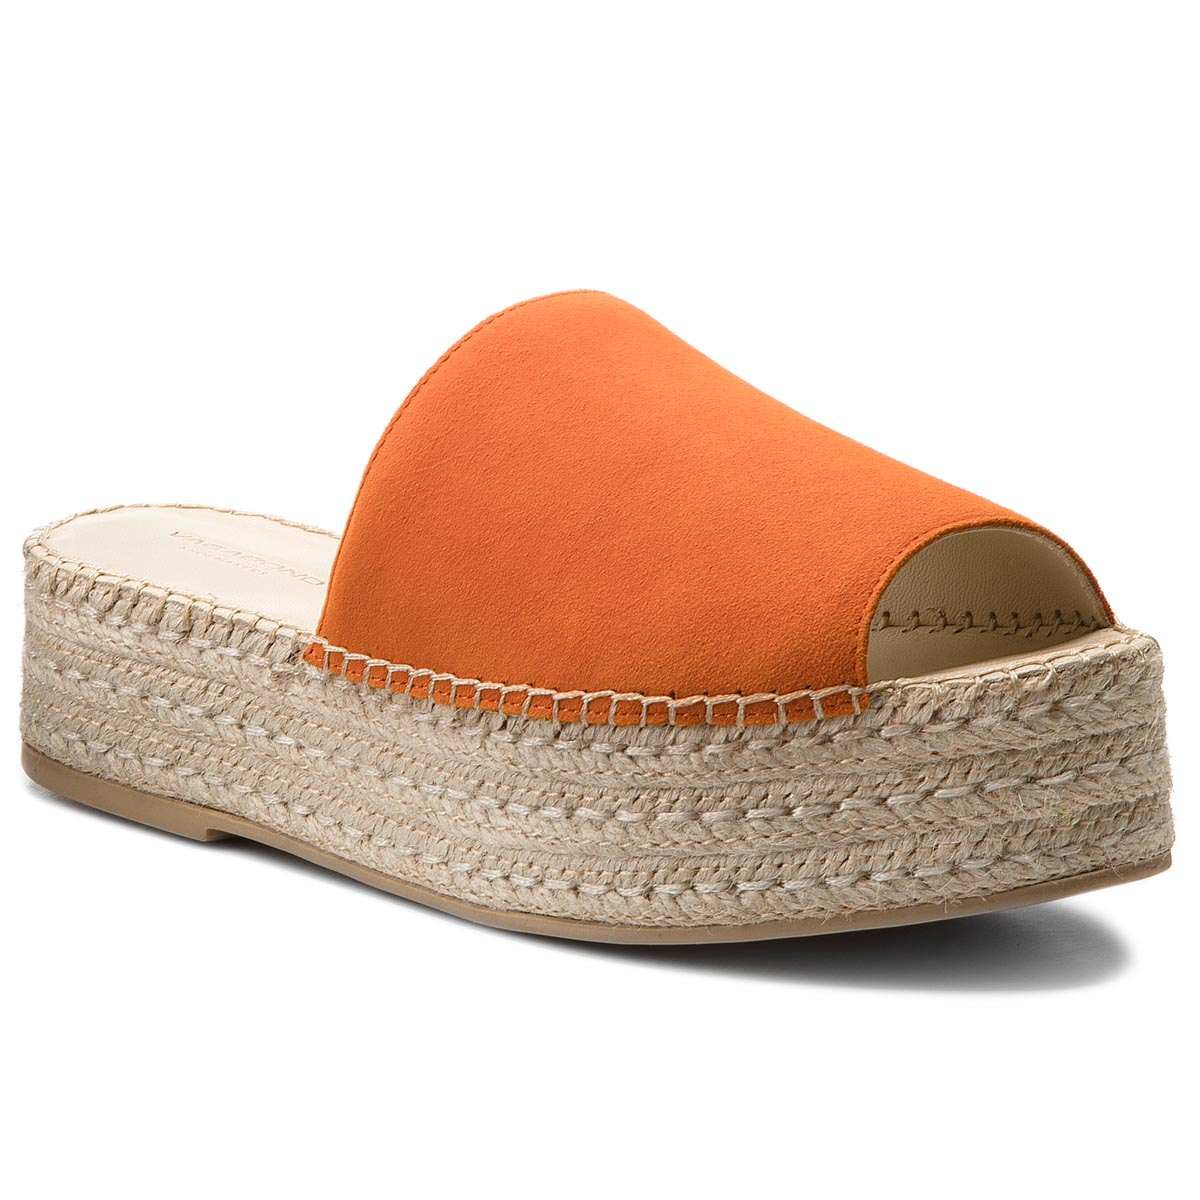 Espadryle VAGABOND - Celeste 4533-040-44 Orange